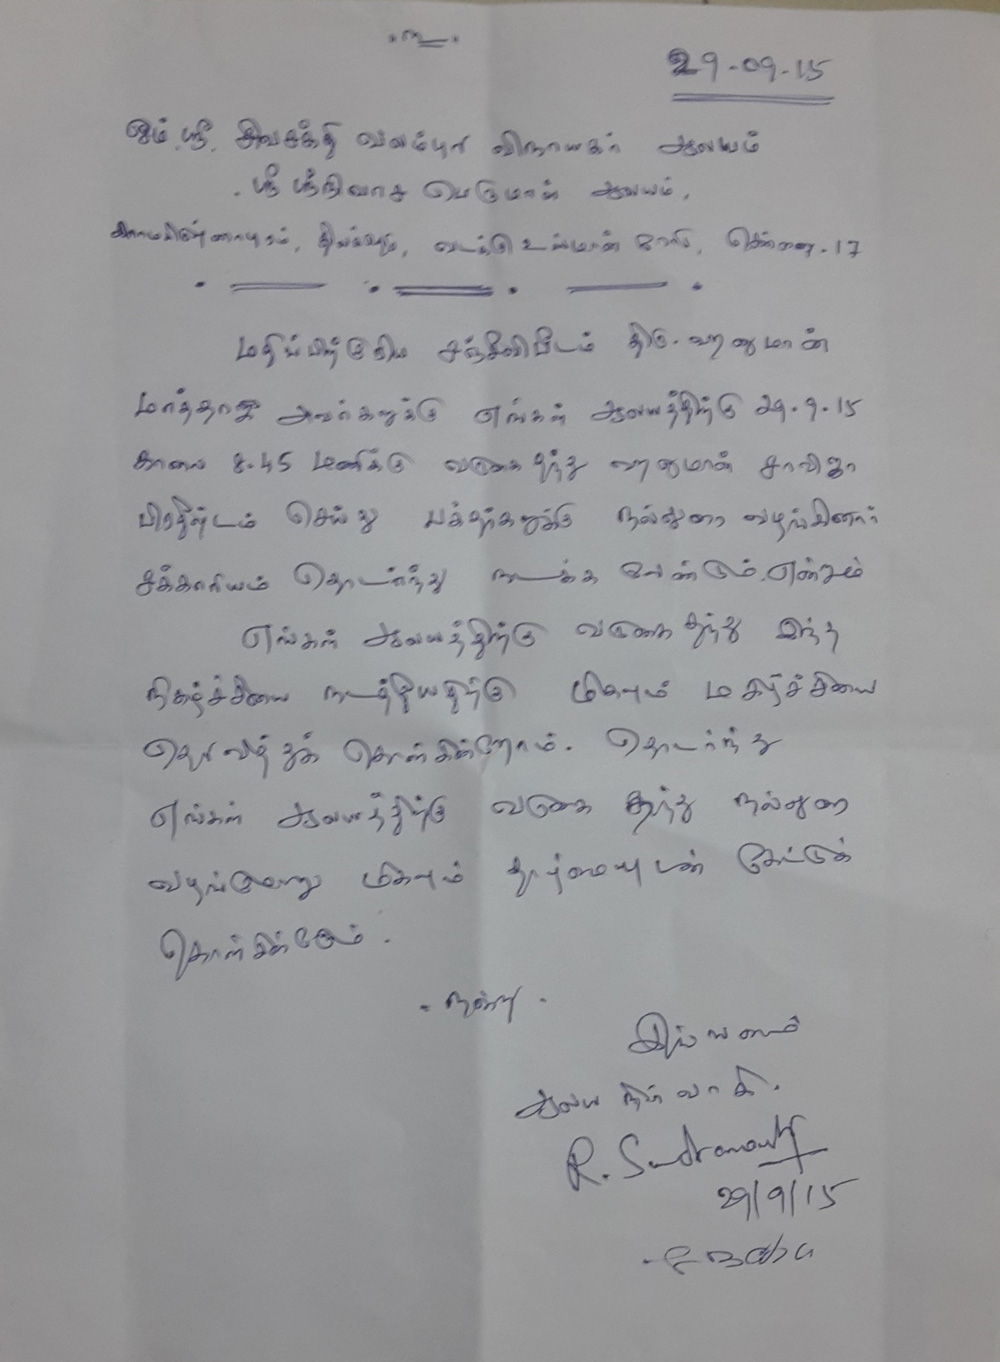 18-th-letter29-9-2015